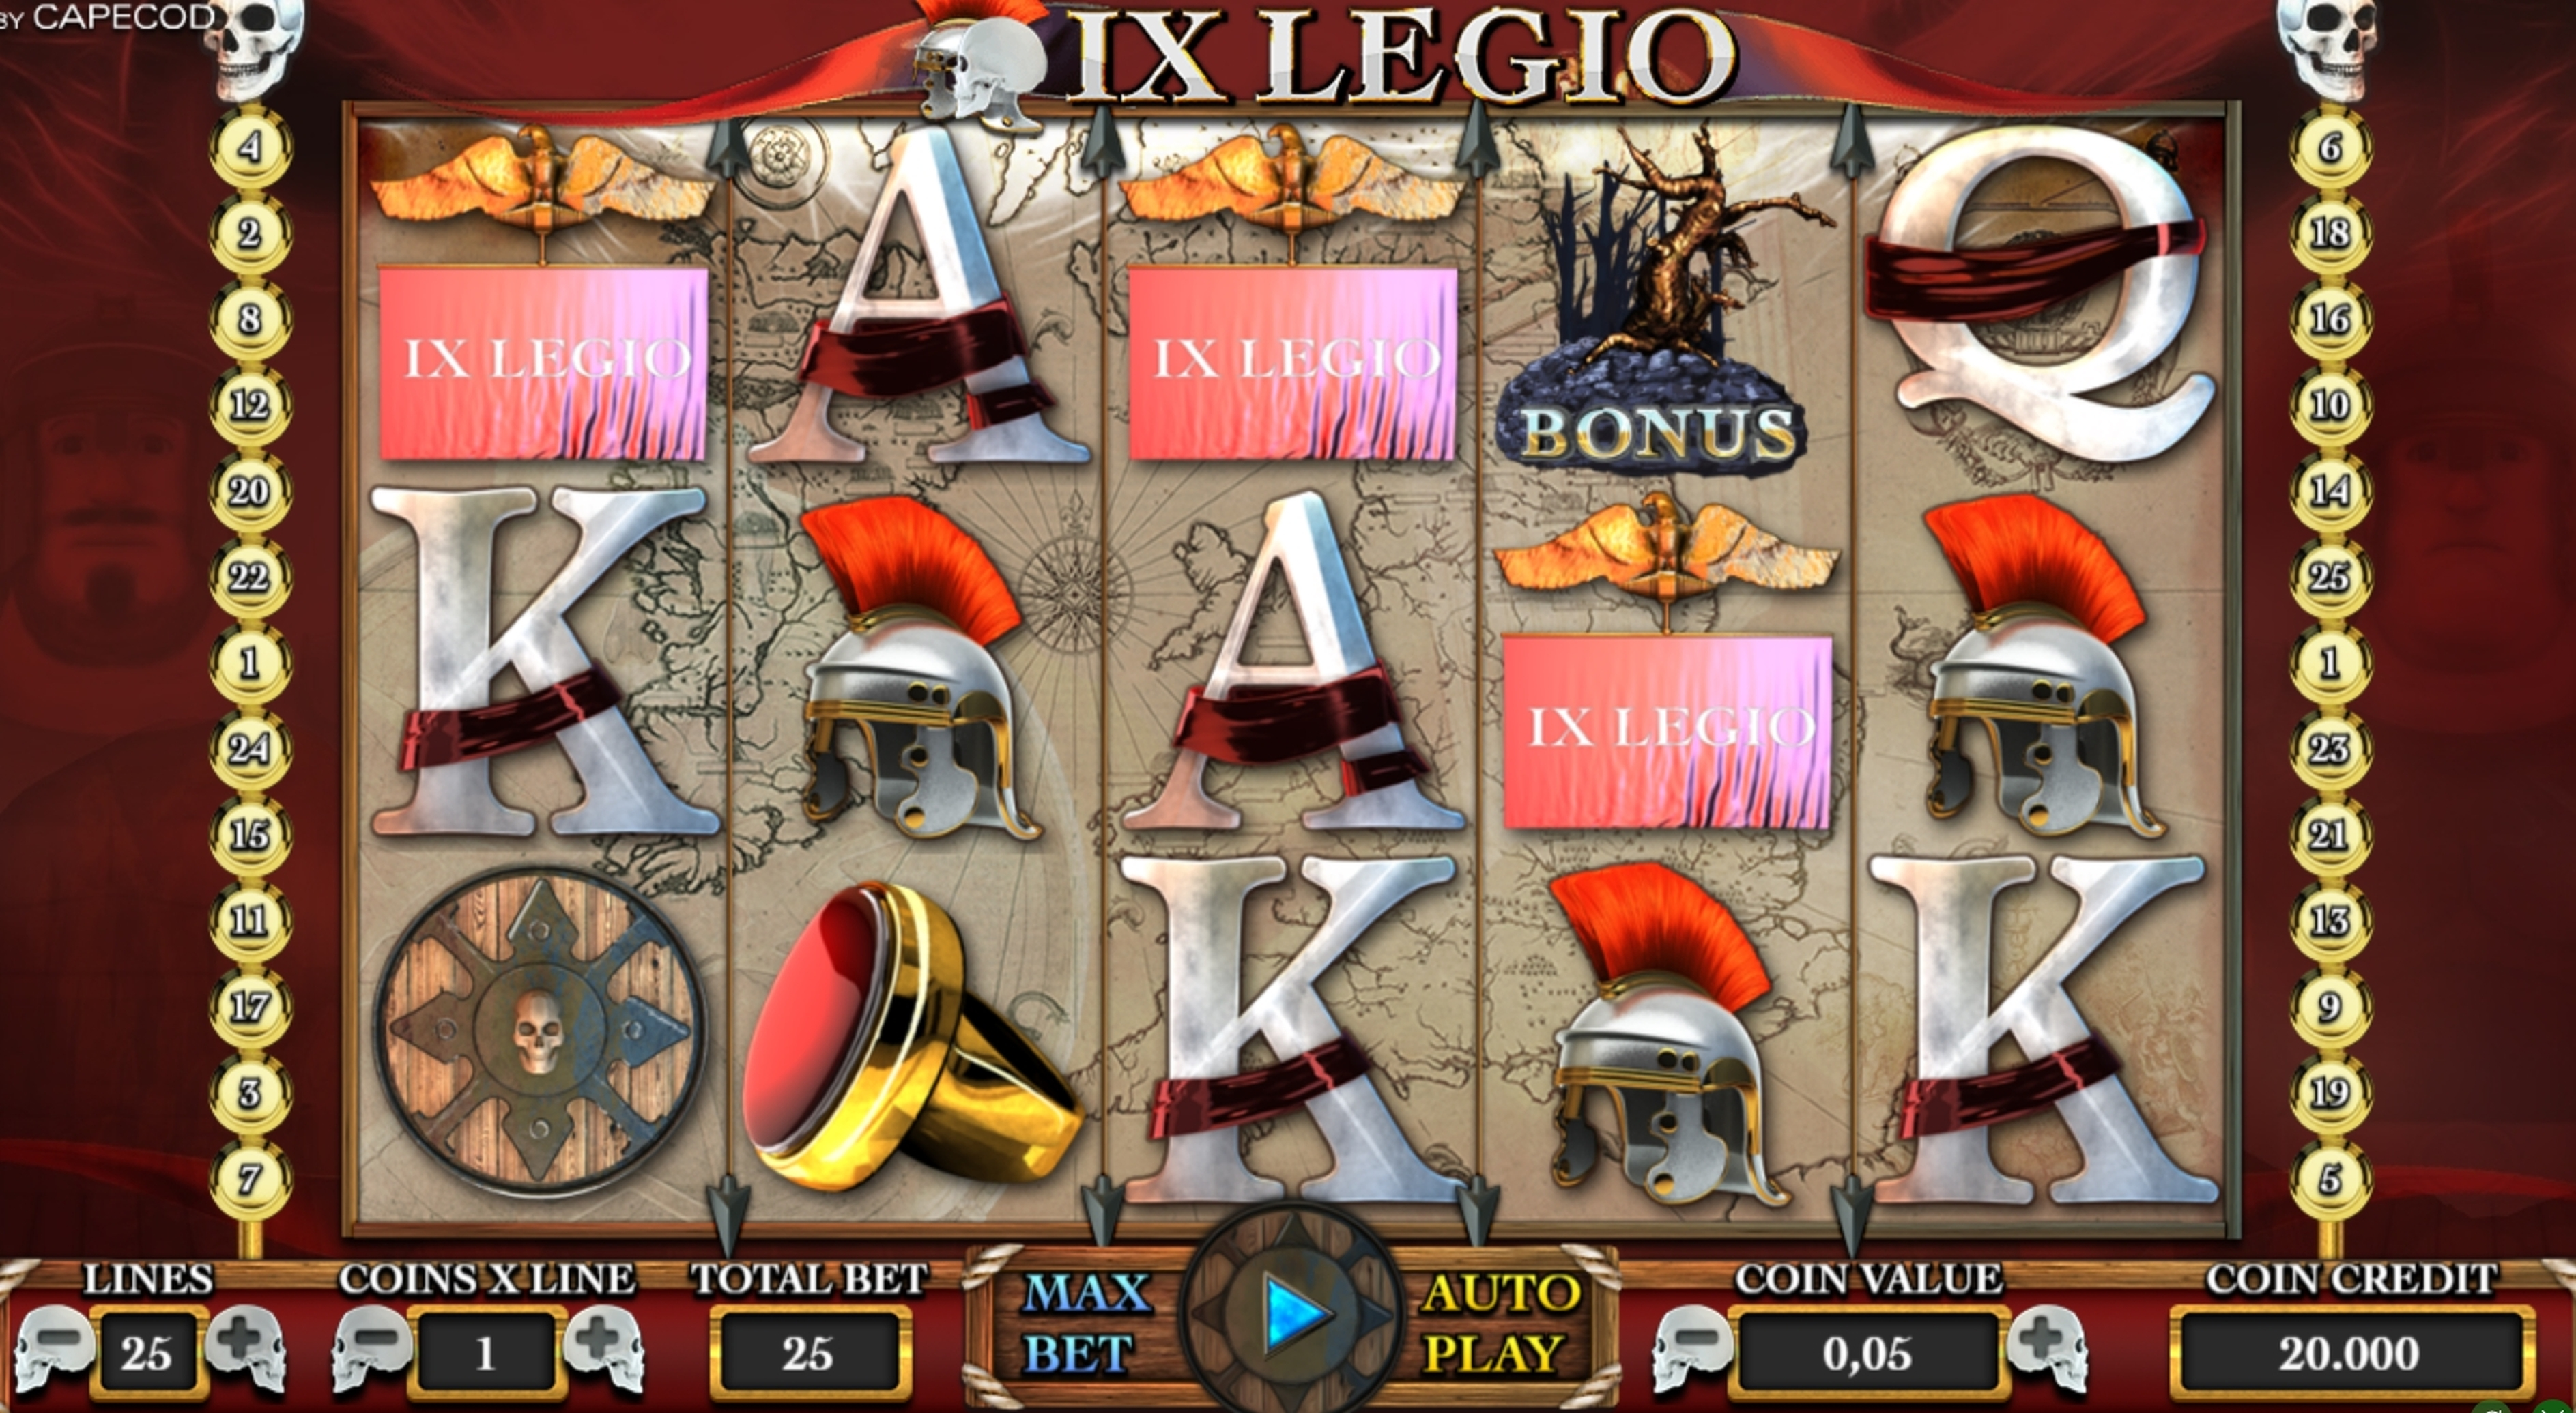 Reels in IX Legio Slot Game by Capecod Gaming